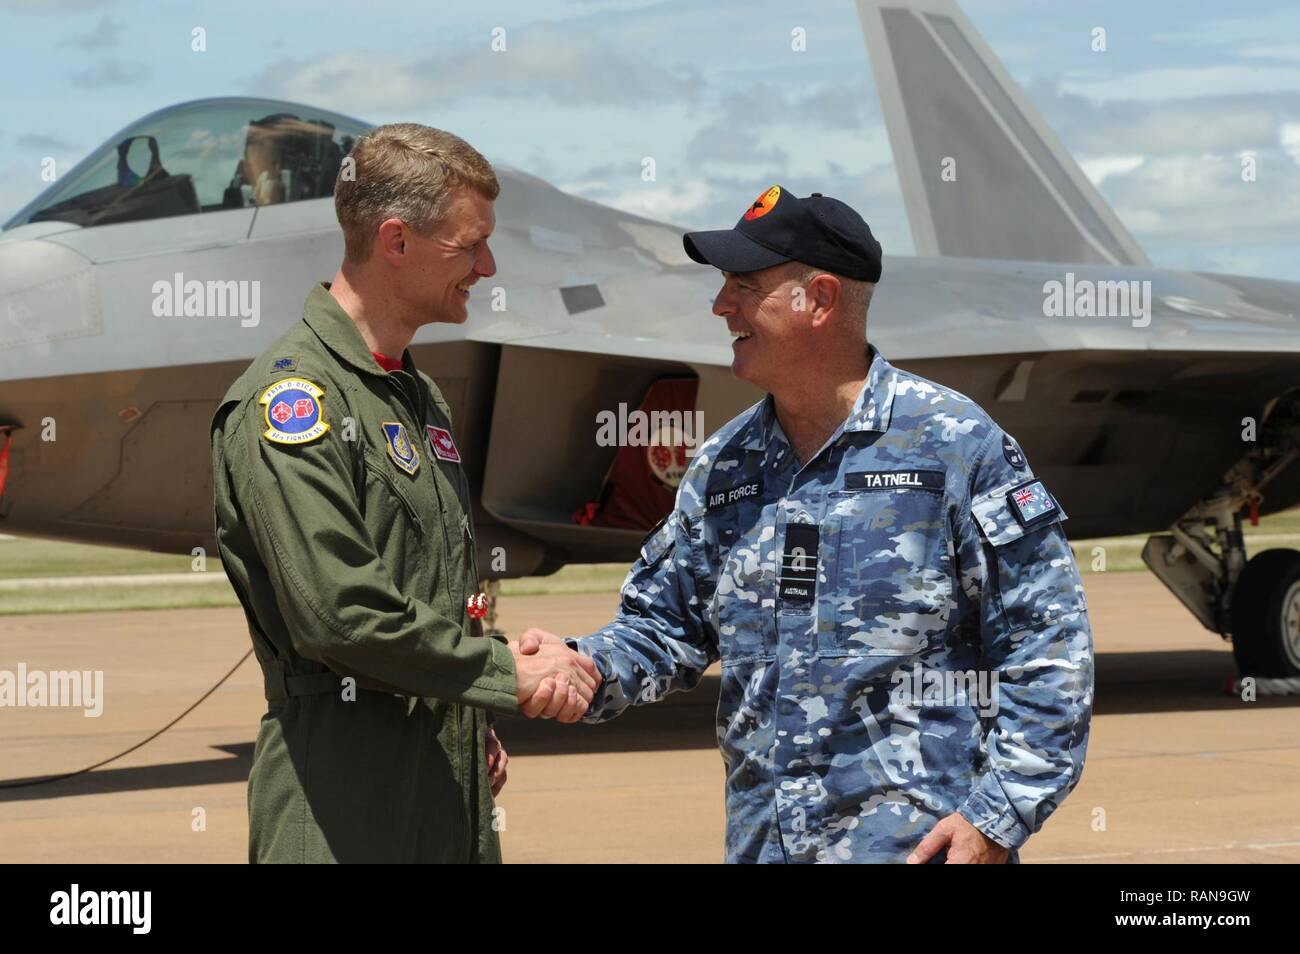 U.S. Air Force Lt. Col. David Skalicky, 90th Fighter Squadron commander, and Wing Commander Andrew Tatnell, Royal Australian Air Force Base Tindal Senior Australian Defence Force Officer, shake hands in front of a U.S. F-22 Raptor at RAAF Base Tindal, Australia, Feb. 24, 2017. Twelve F-22 Raptors and approximately 200 U.S. Air Force Airmen are in Australia as part of the Enhanced Air Cooperation, an initiative under the Force Posture Agreement between the U.S. and Australia. - Stock Image